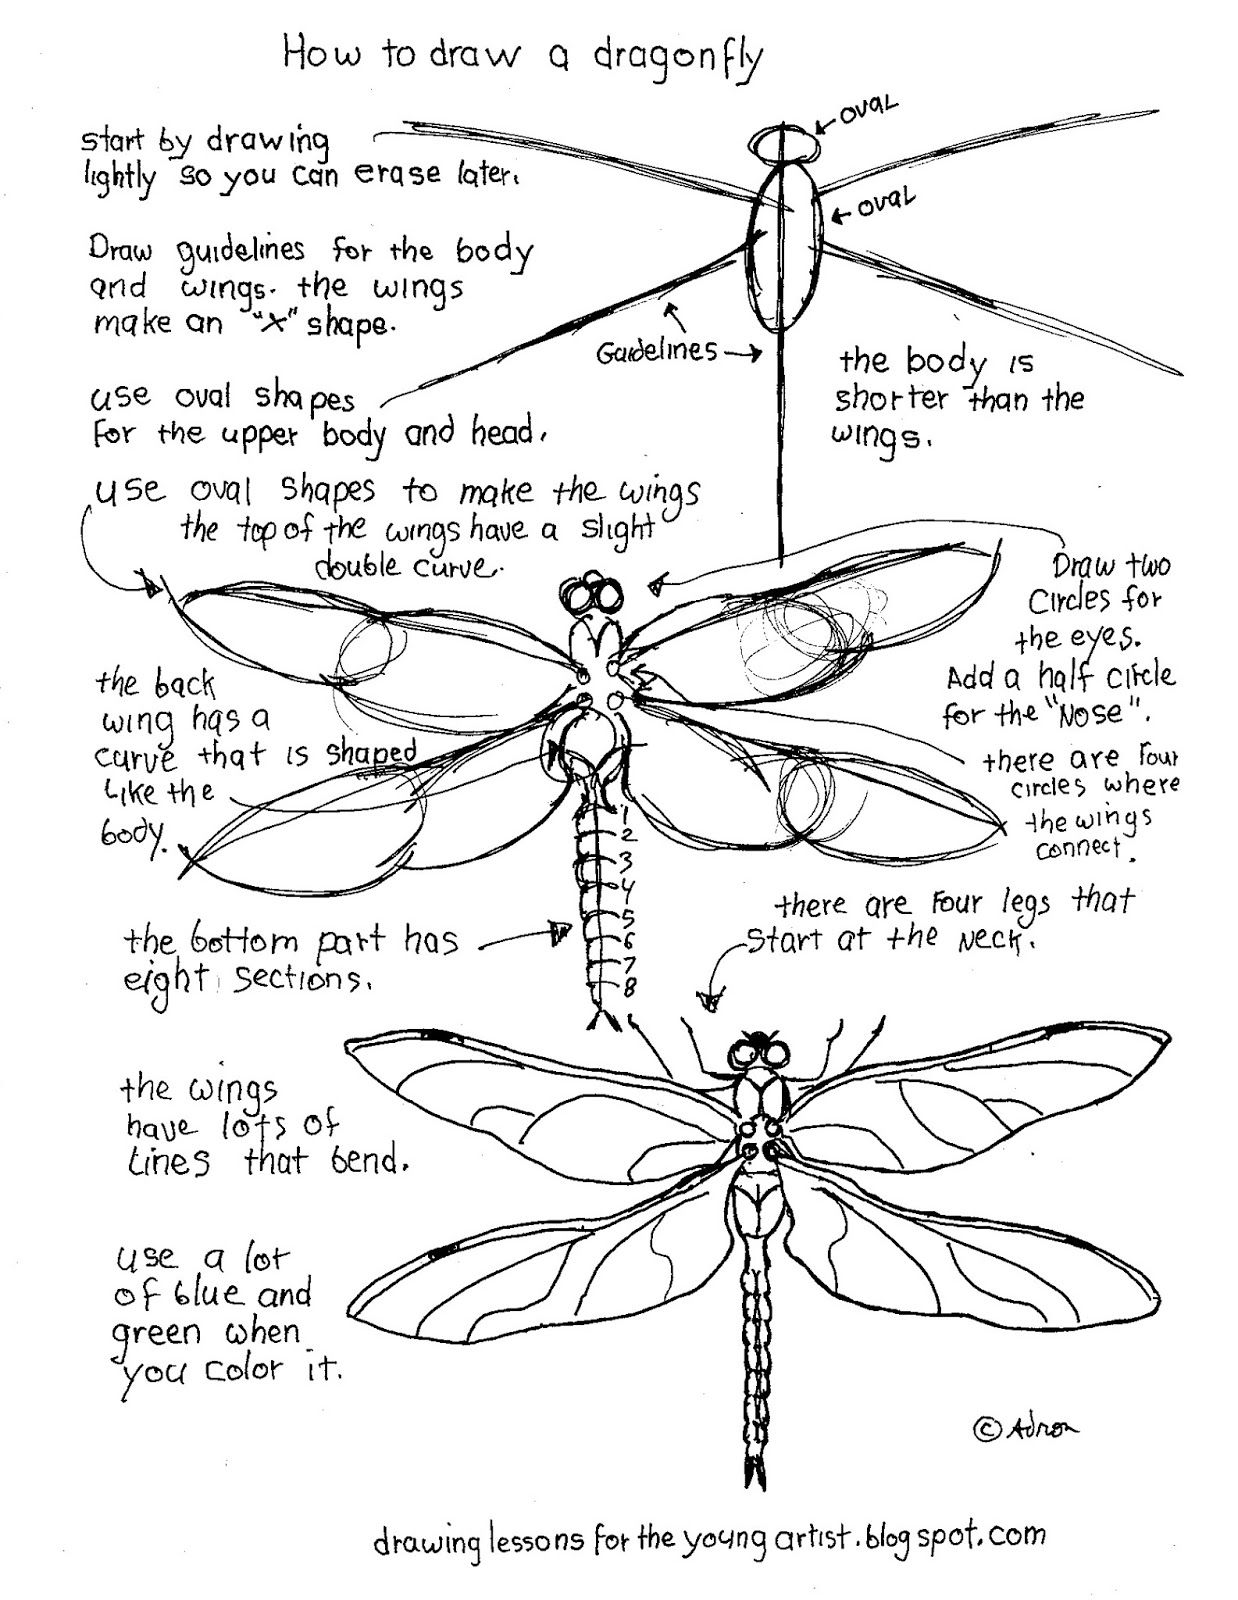 how to draw worksheets for the young artist printable how to draw a dragonfly worksheet there are project notes at the blog  [ 1238 x 1600 Pixel ]